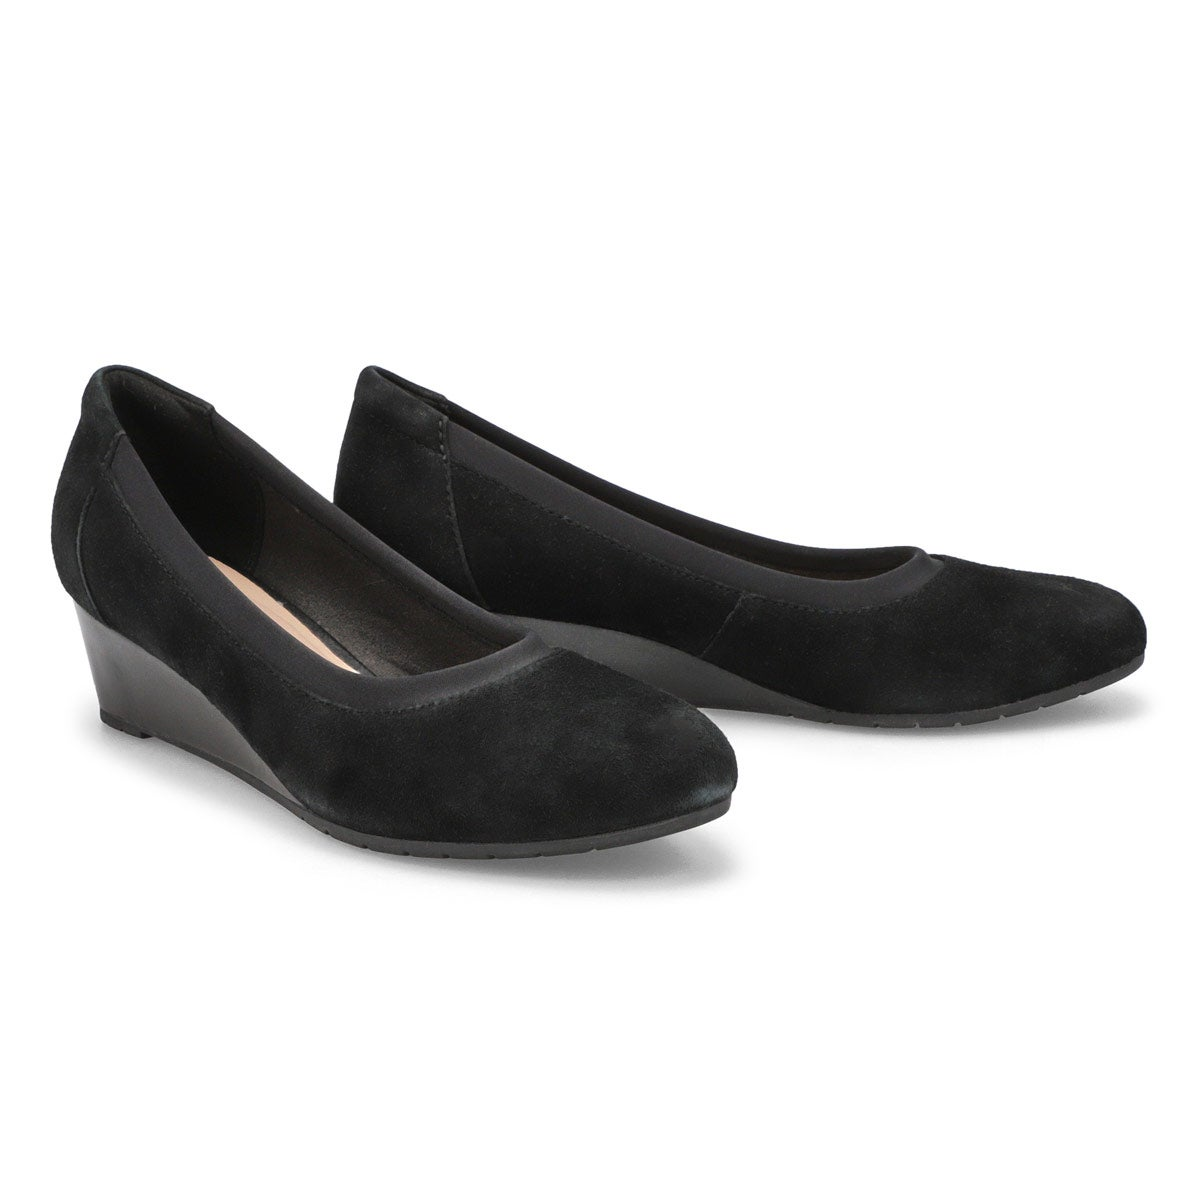 Women's Mallory Berry Dress Shoe - Black